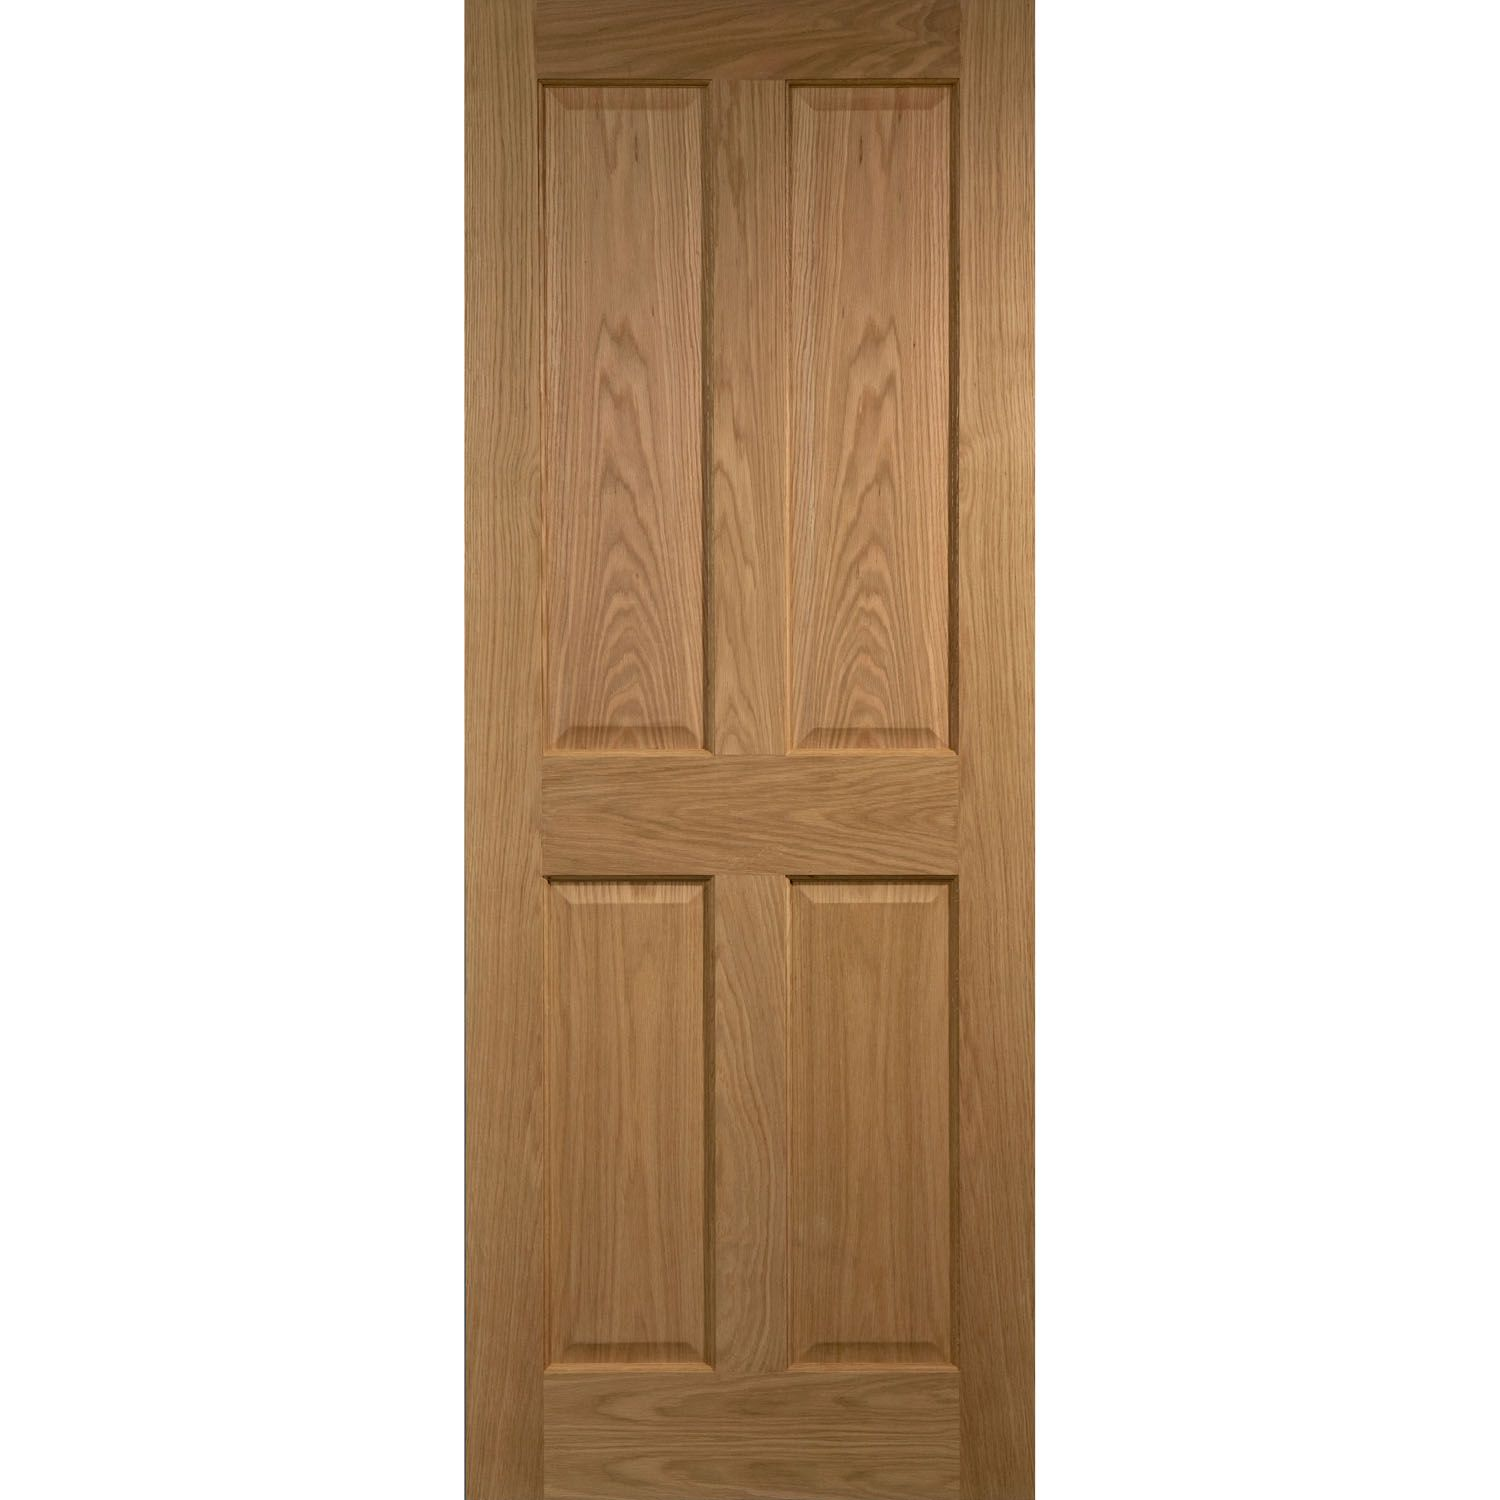 Canterbury 4 Panel Oak Veneer Interior Door u2013 Next Day Delivery Canterbury 4 Panel Oak Veneer  sc 1 st  Pinterest & Canterbury 4 Panel Oak Veneer Interior Door u2013 Next Day Delivery ... pezcame.com